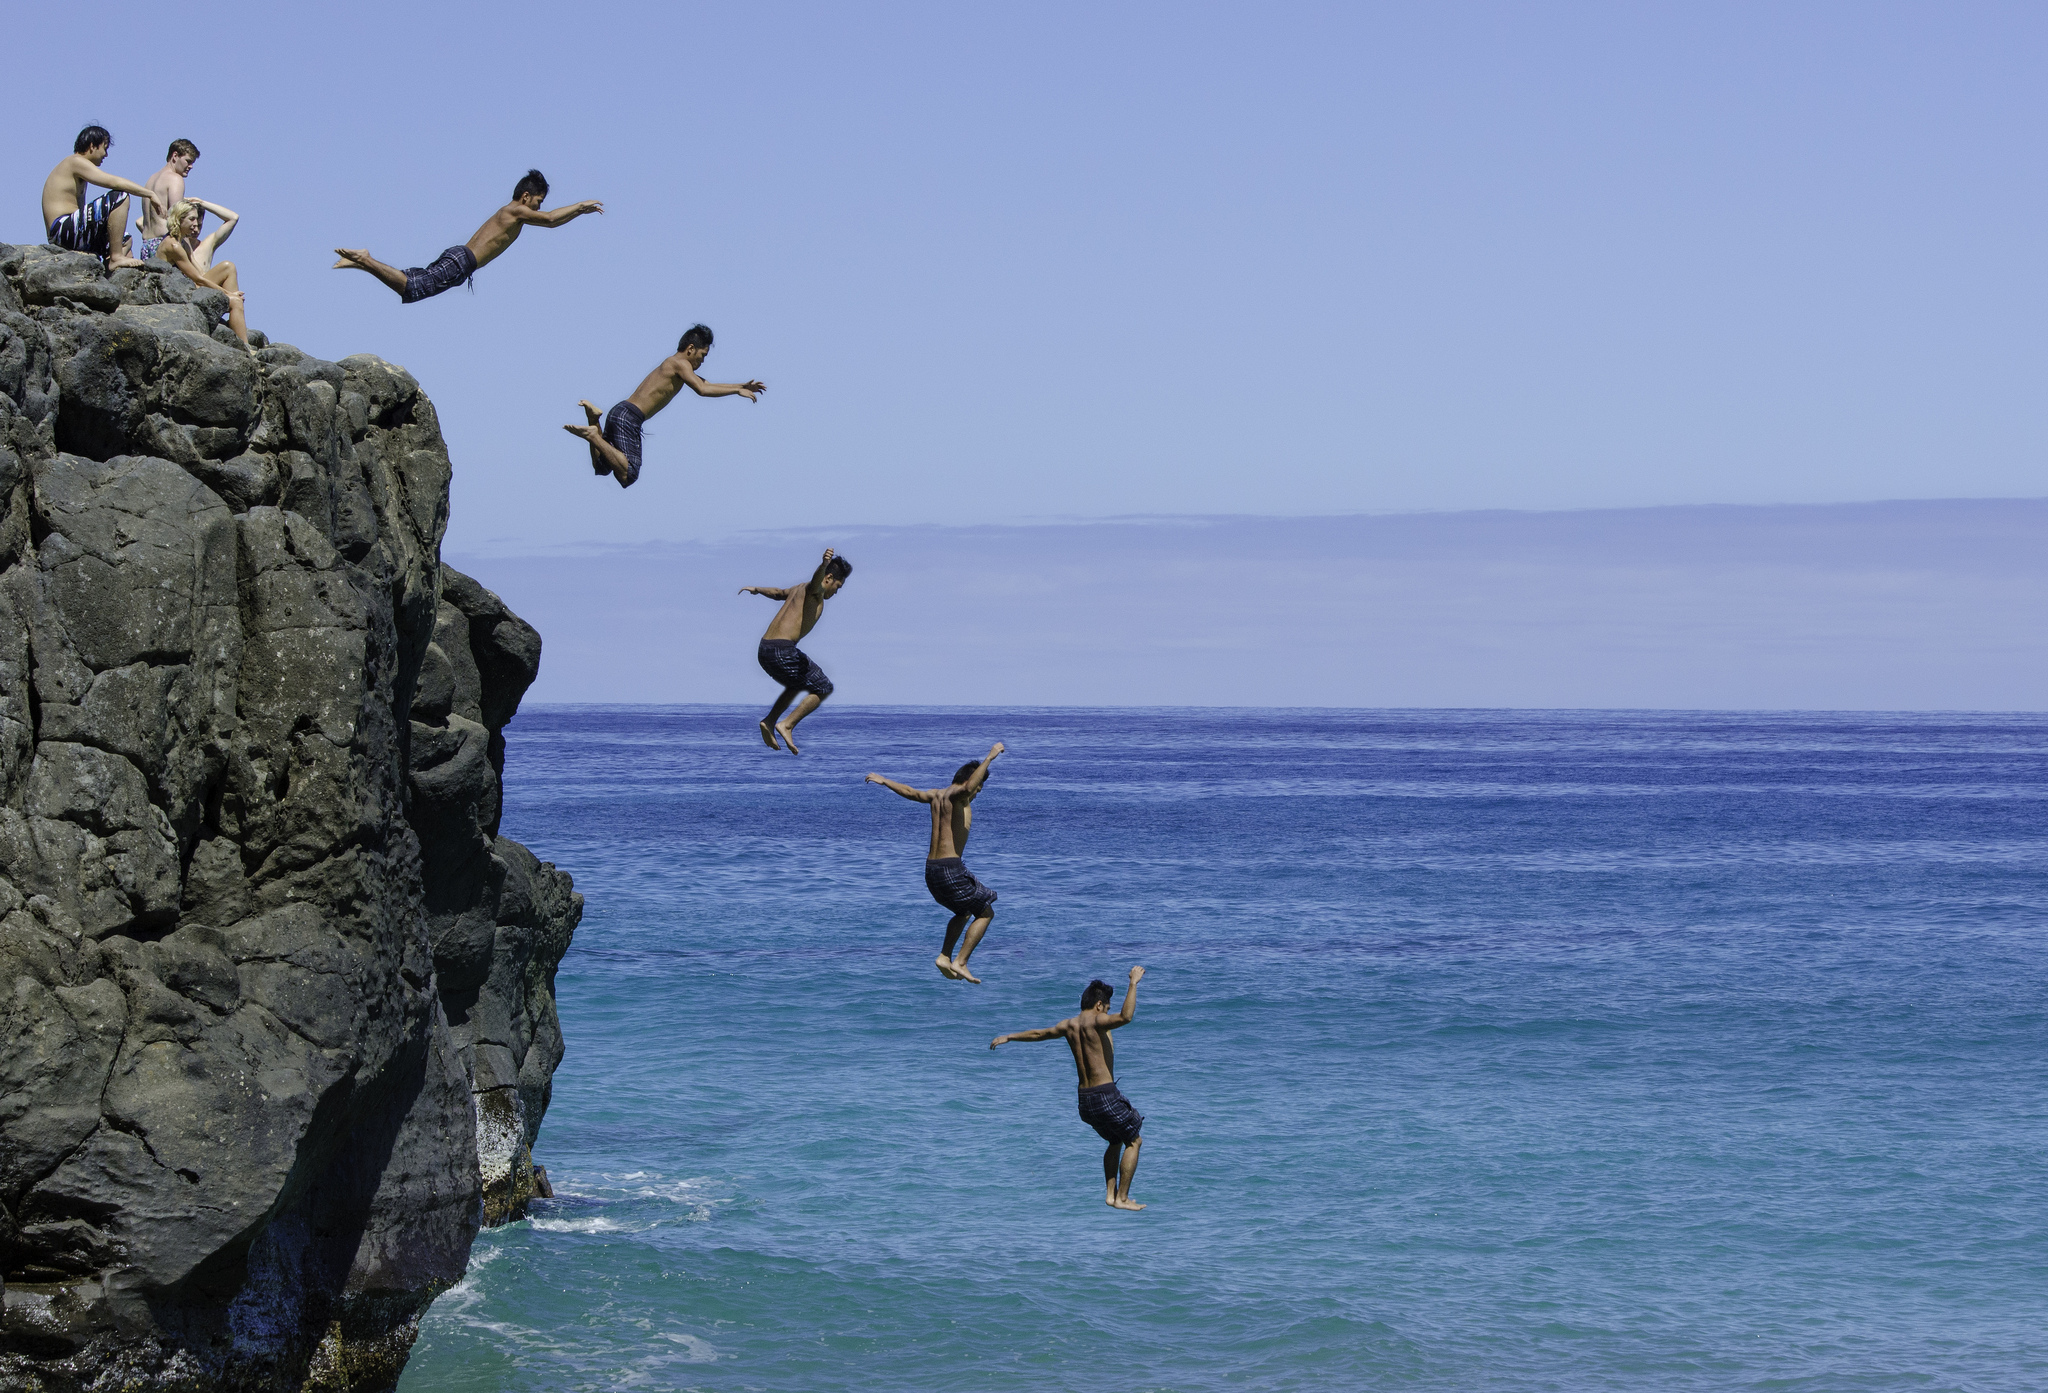 World's Best Cliff Diving: Drop it Like it's Hot